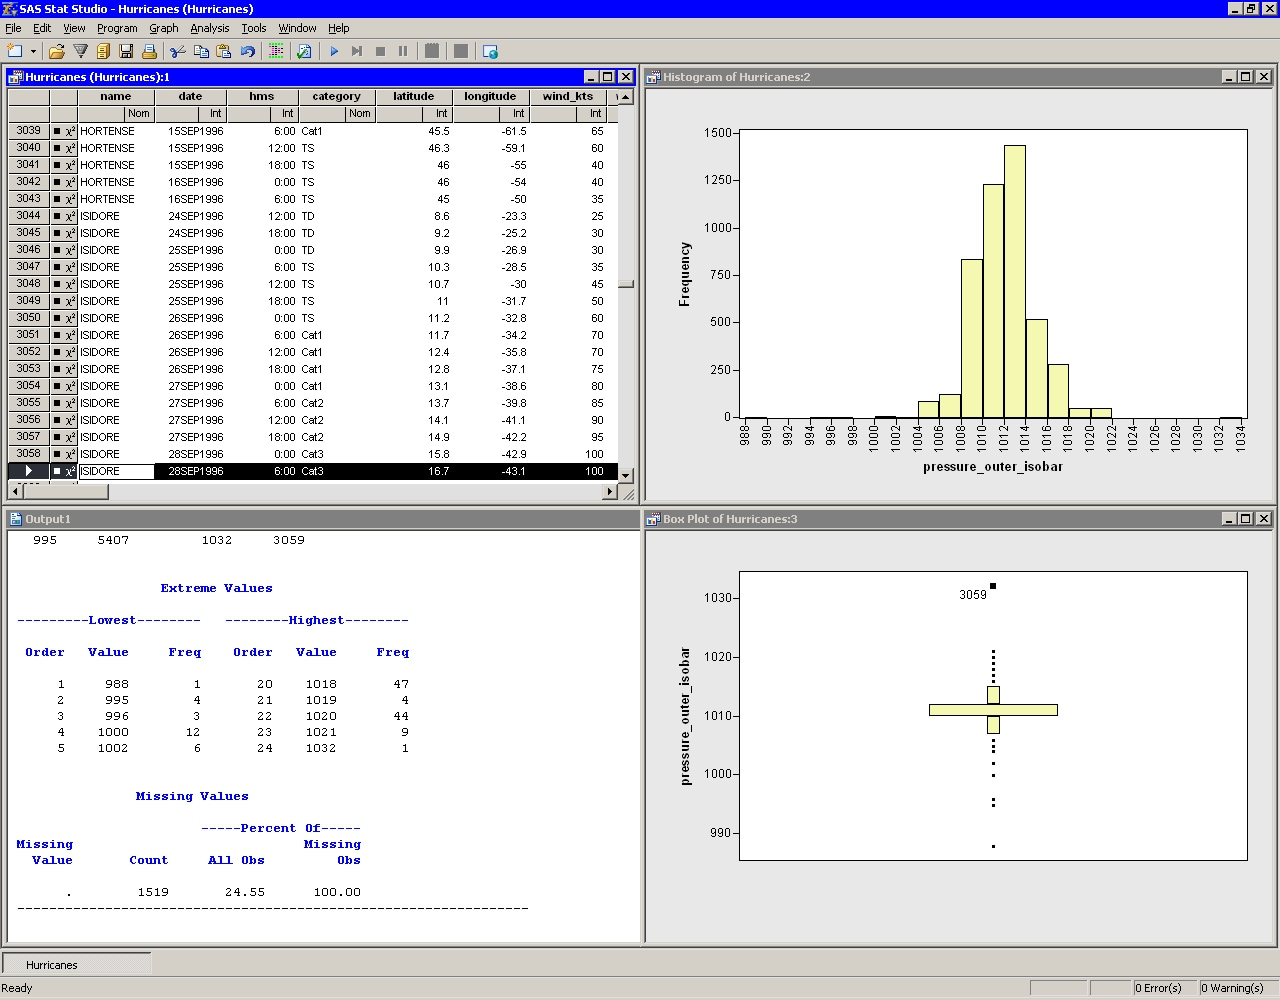 descriptive statistics analysis Definition descriptive statistics form the basis of quantitative data analysis and offer researchers sample data summaries across one variable (univariate) while.